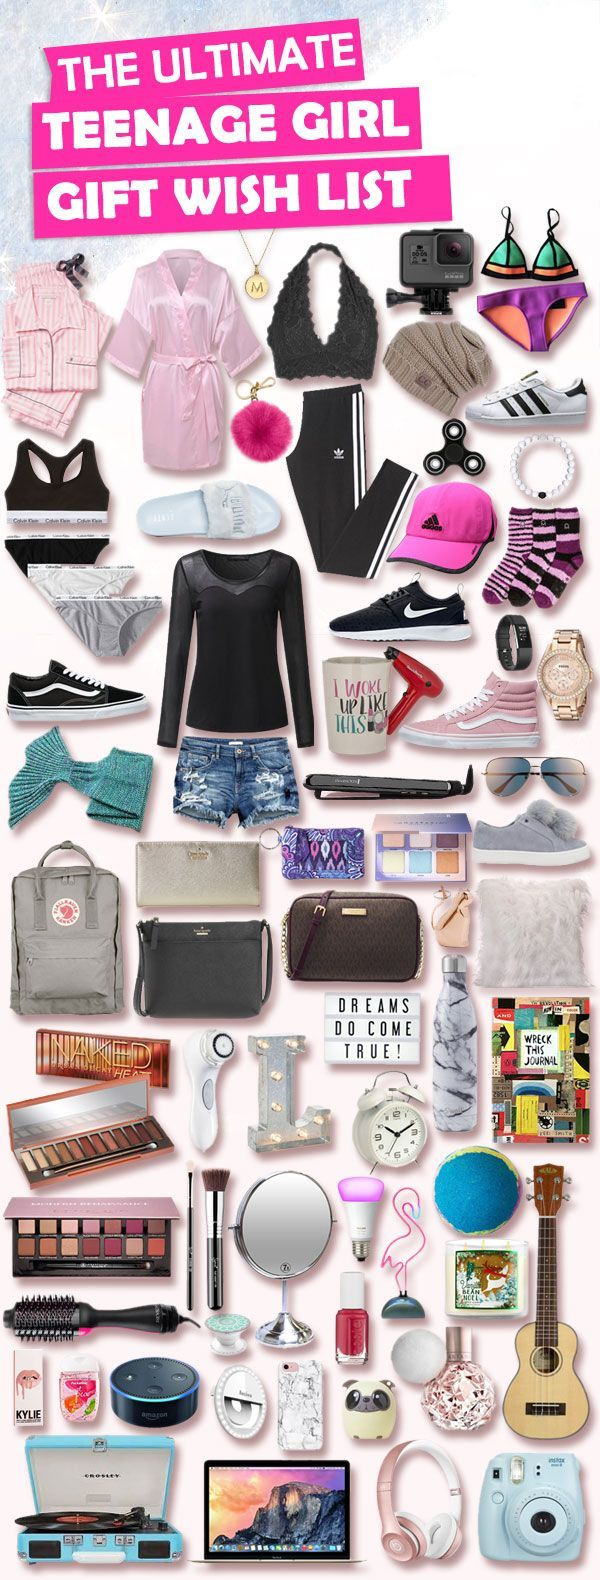 This list is lit. #goals! Has over 500+ Birthday and Christmas gifts for teenage girls.